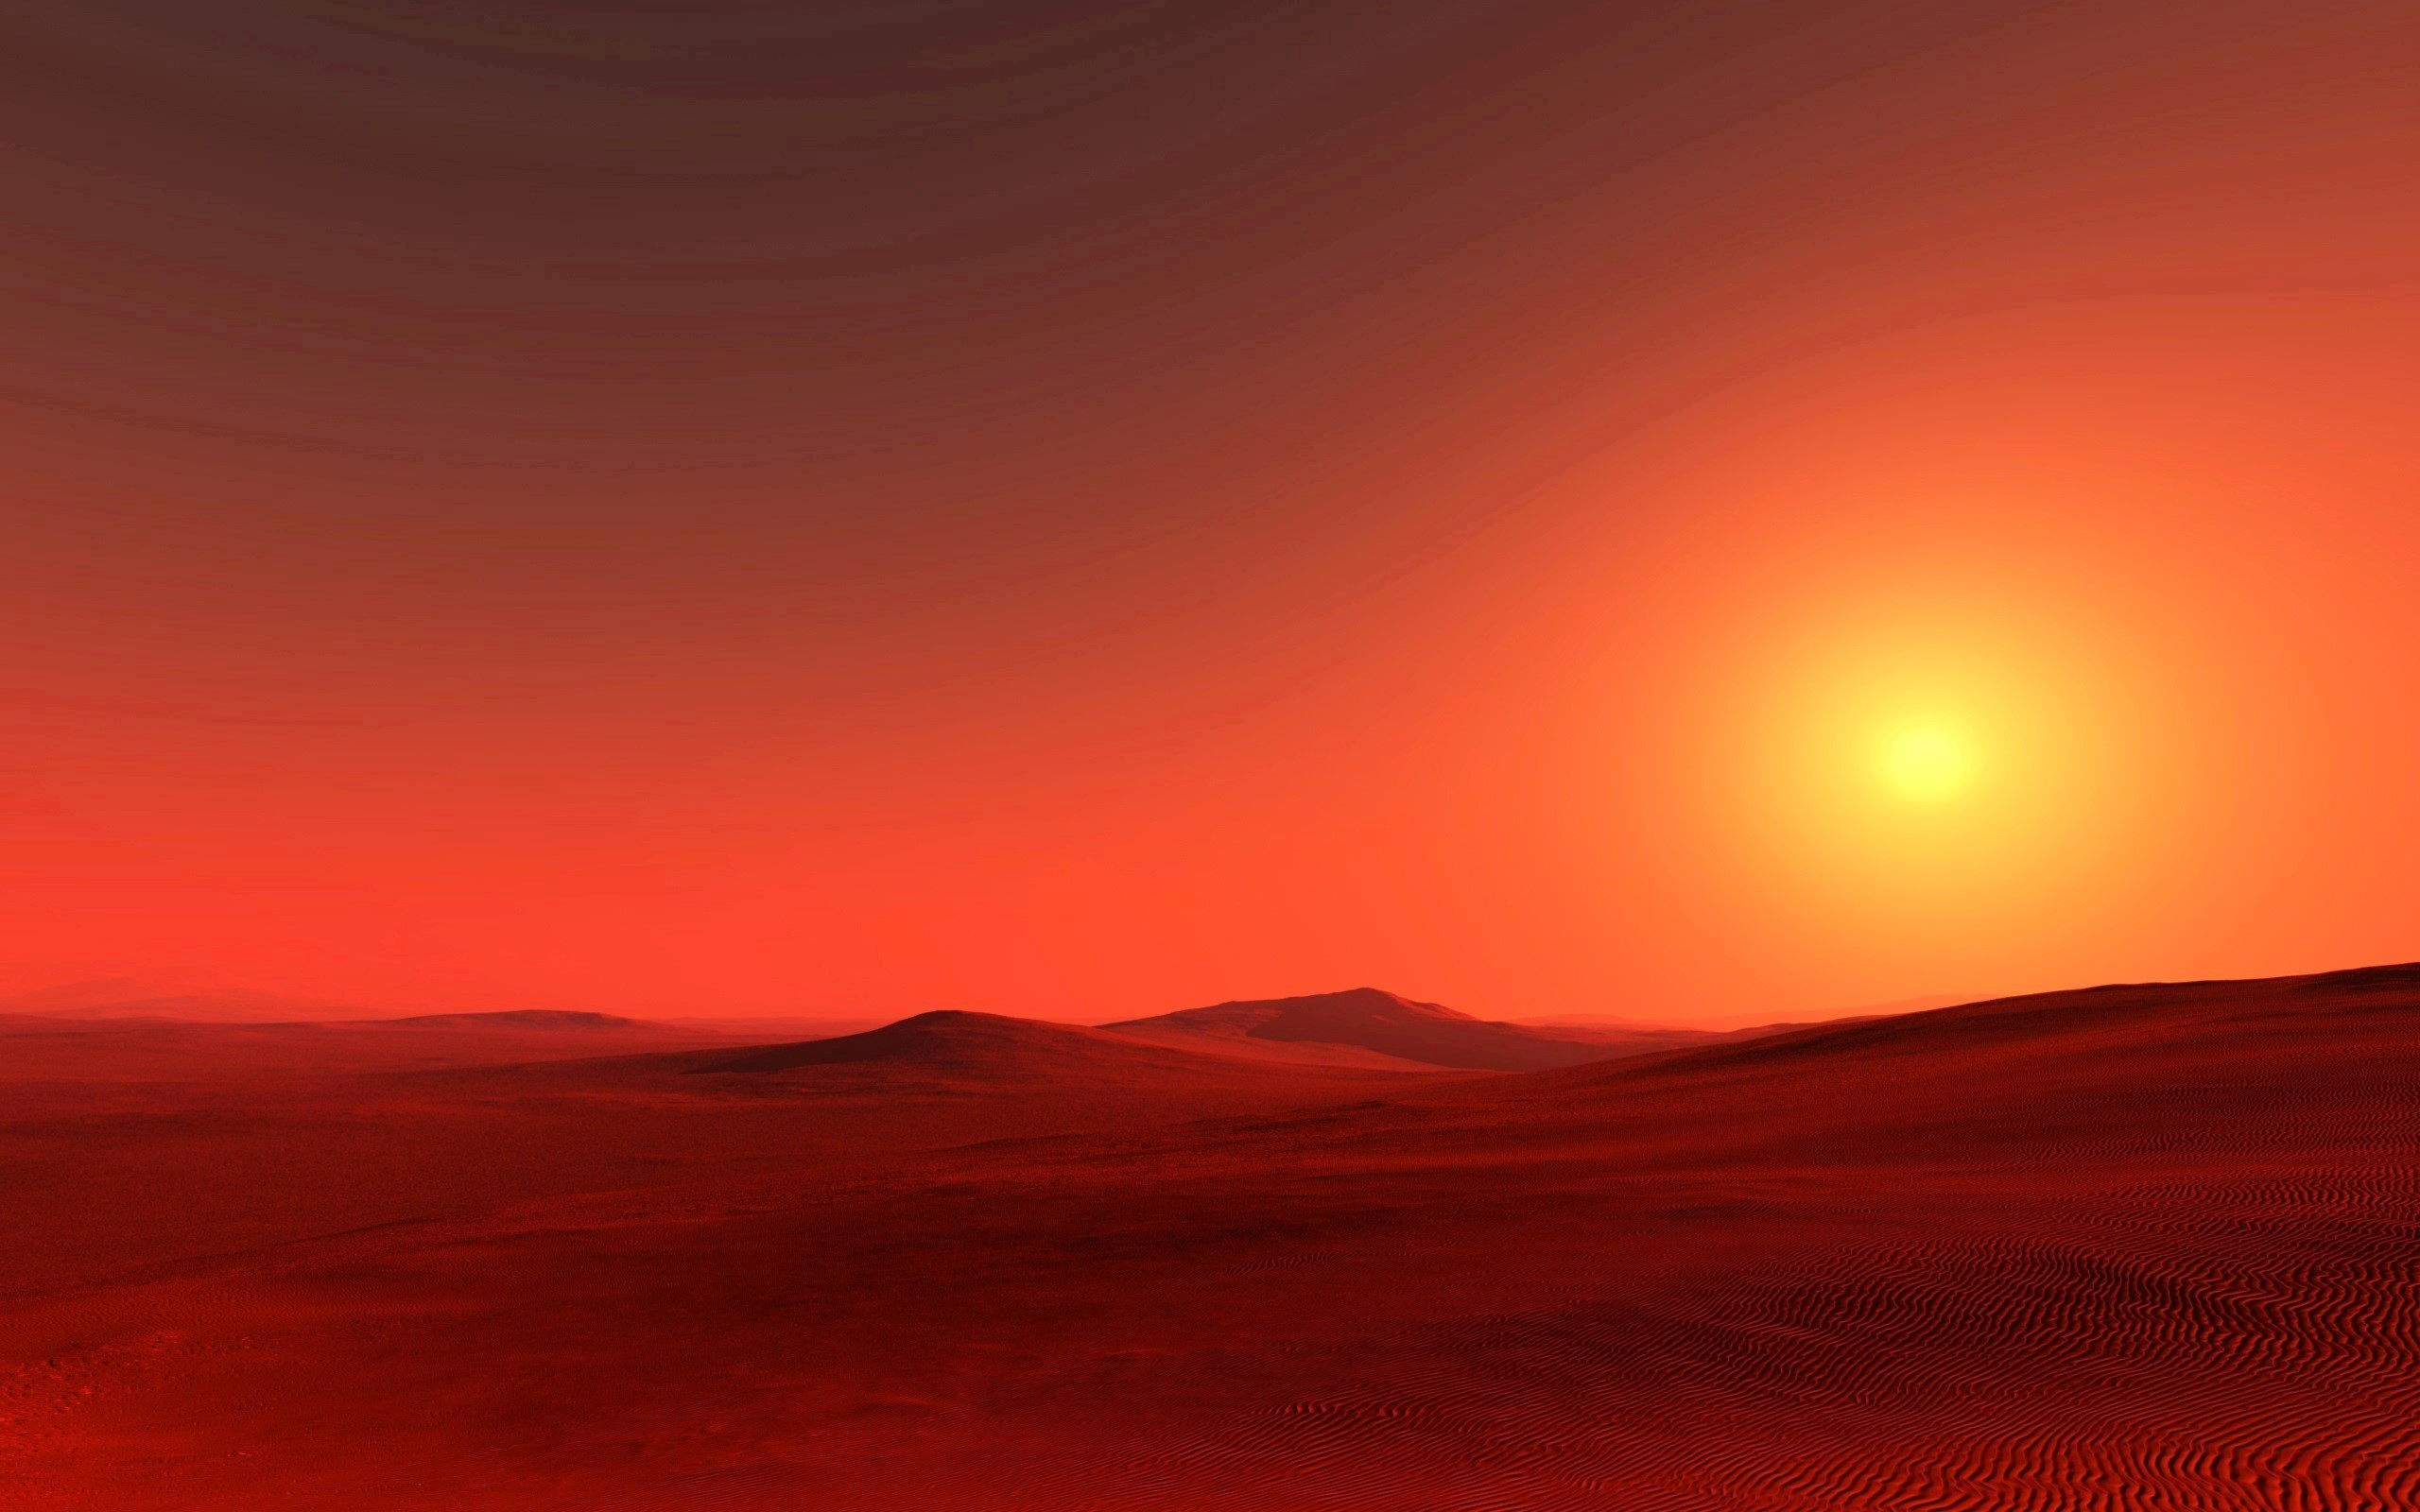 Sunset Wallpapers HD 2560x1600